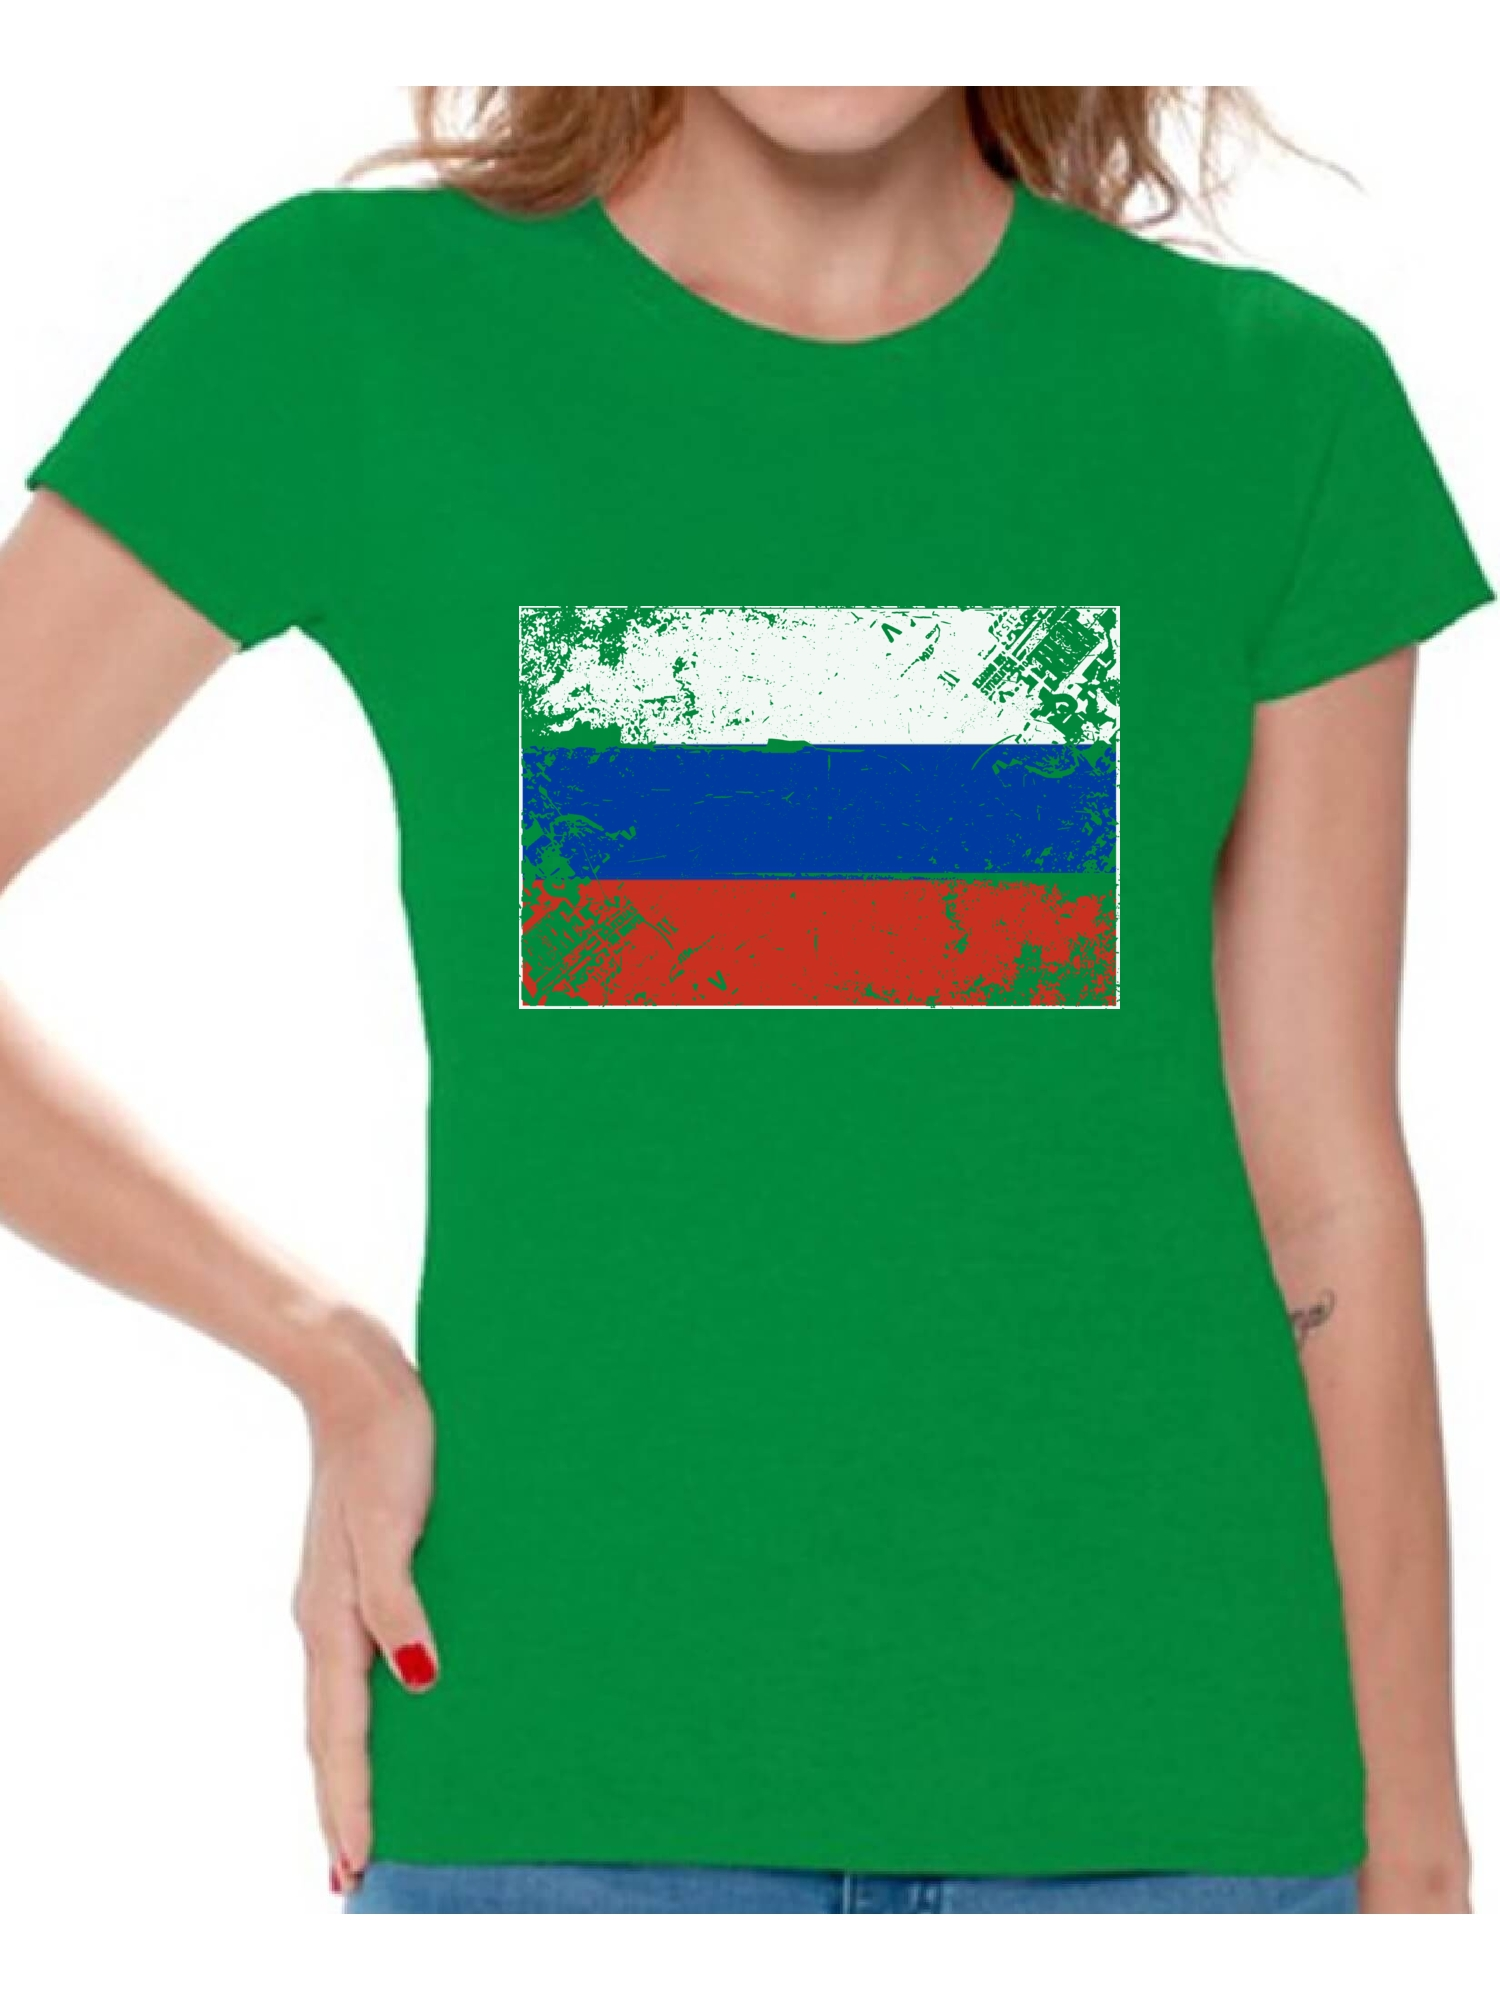 Awkward Styles Russia Flag Shirt For Women Russian Soccer 2018 Tshirt Gifts From Russia Flag Of Russia Russian Women Russia Shirts For Women Russia